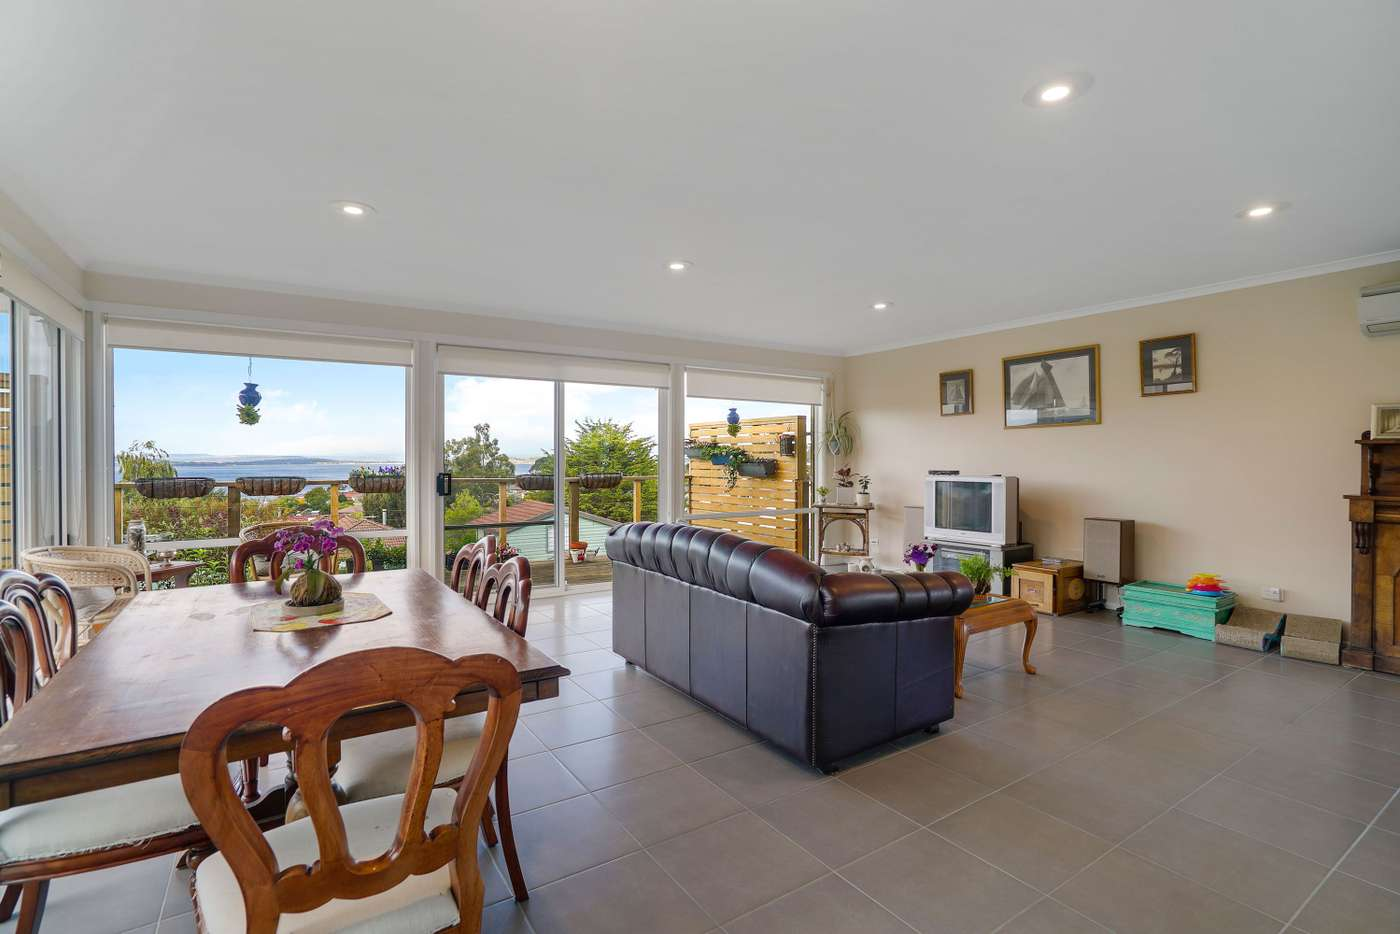 Fifth view of Homely house listing, 22 Calder Crescent, Blackmans Bay TAS 7052